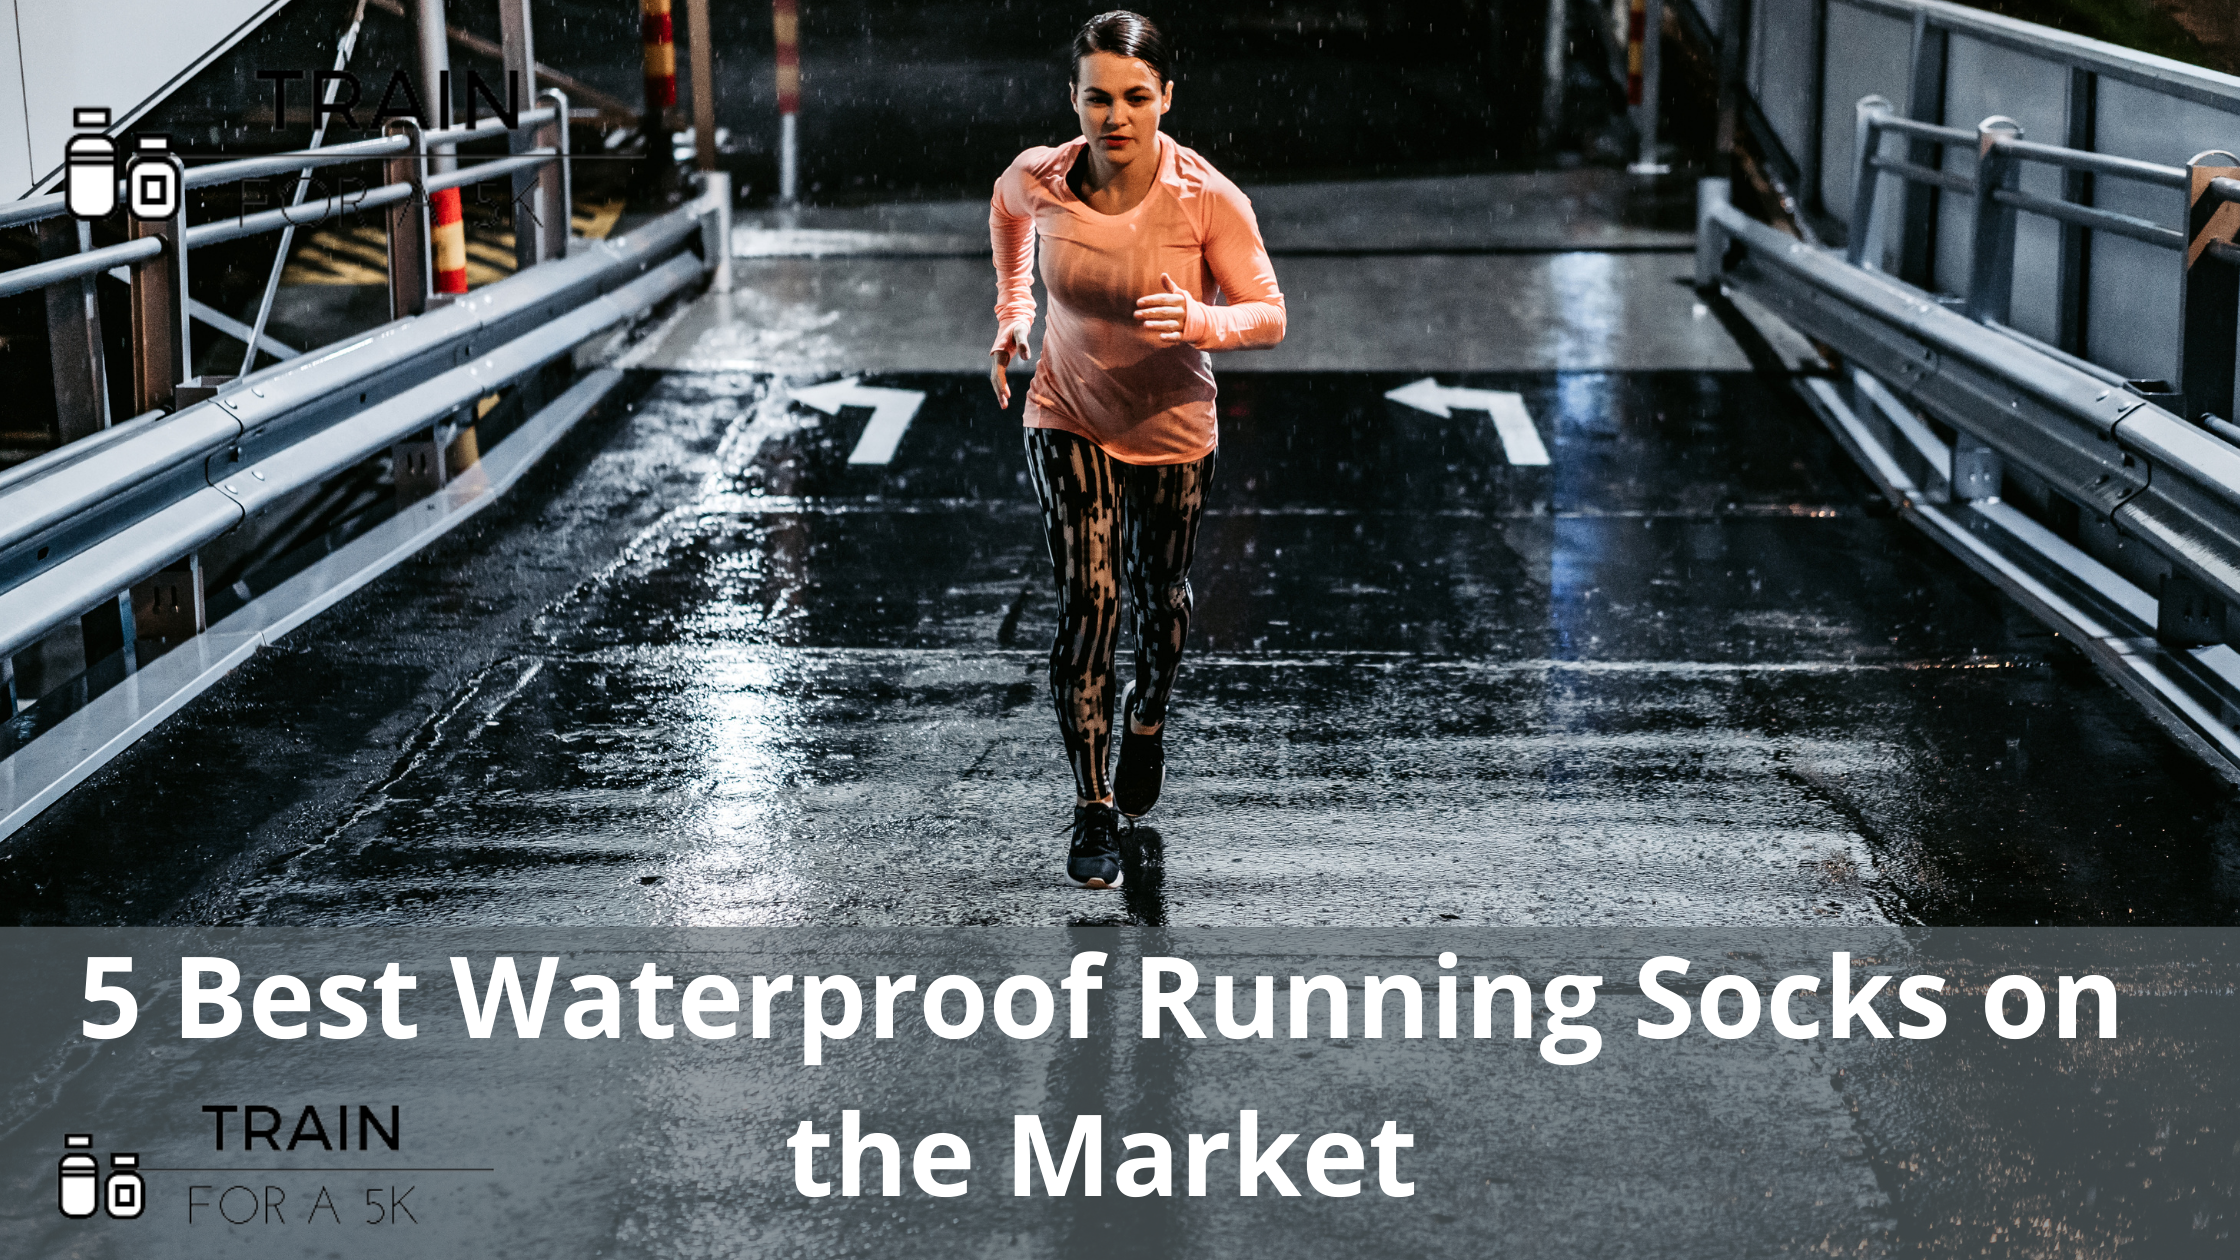 We have done our research and discovered the best waterproof running sock options on the market today. We did not just look at overall water resistance, but also comfort, durability, breathability, and general performance as factors to consider as well.